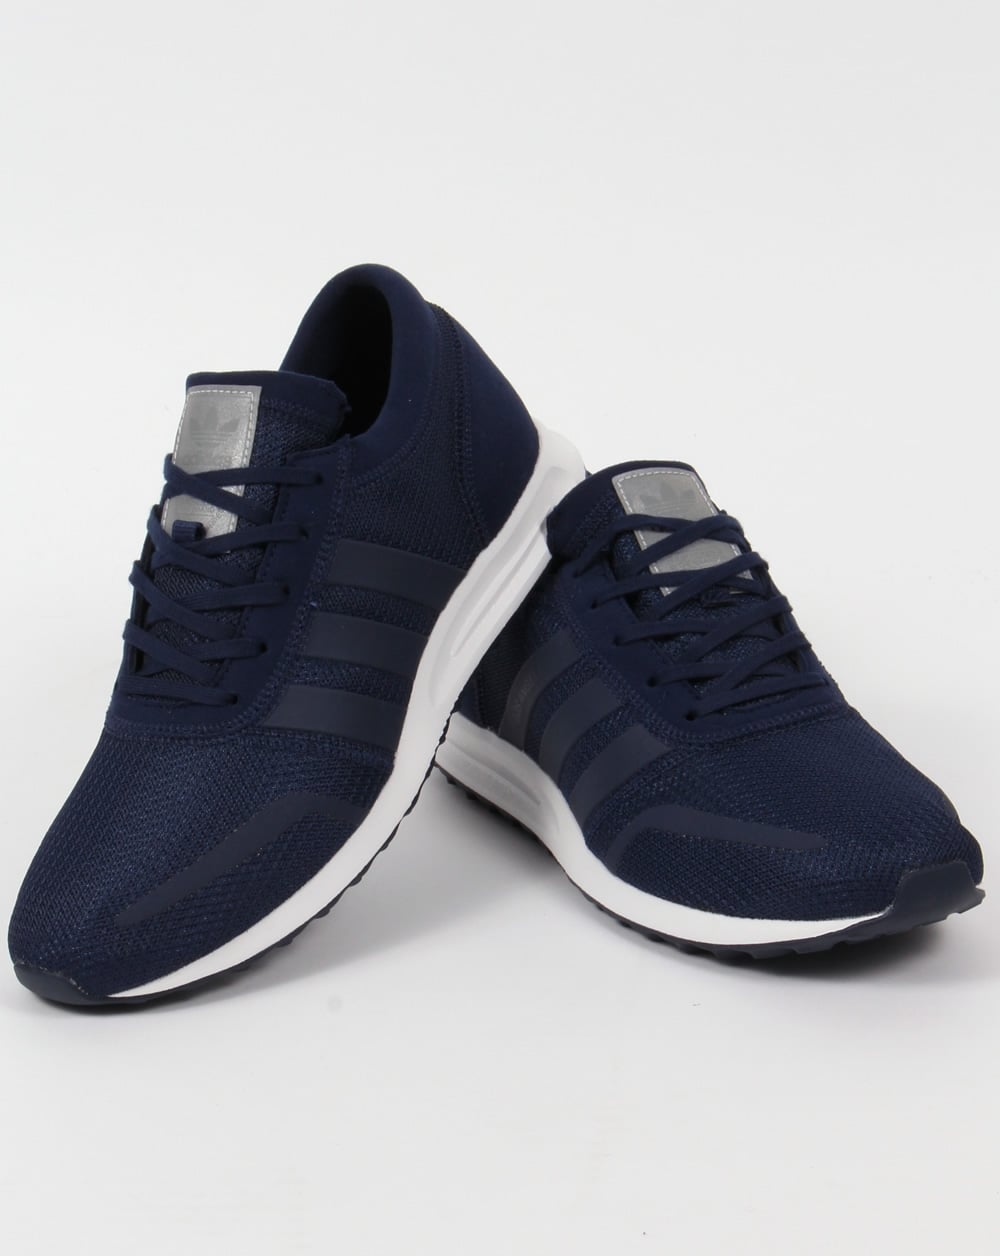 063921004370 Adidas Los Angeles Dark Blue kenmore-cleaning.co.uk